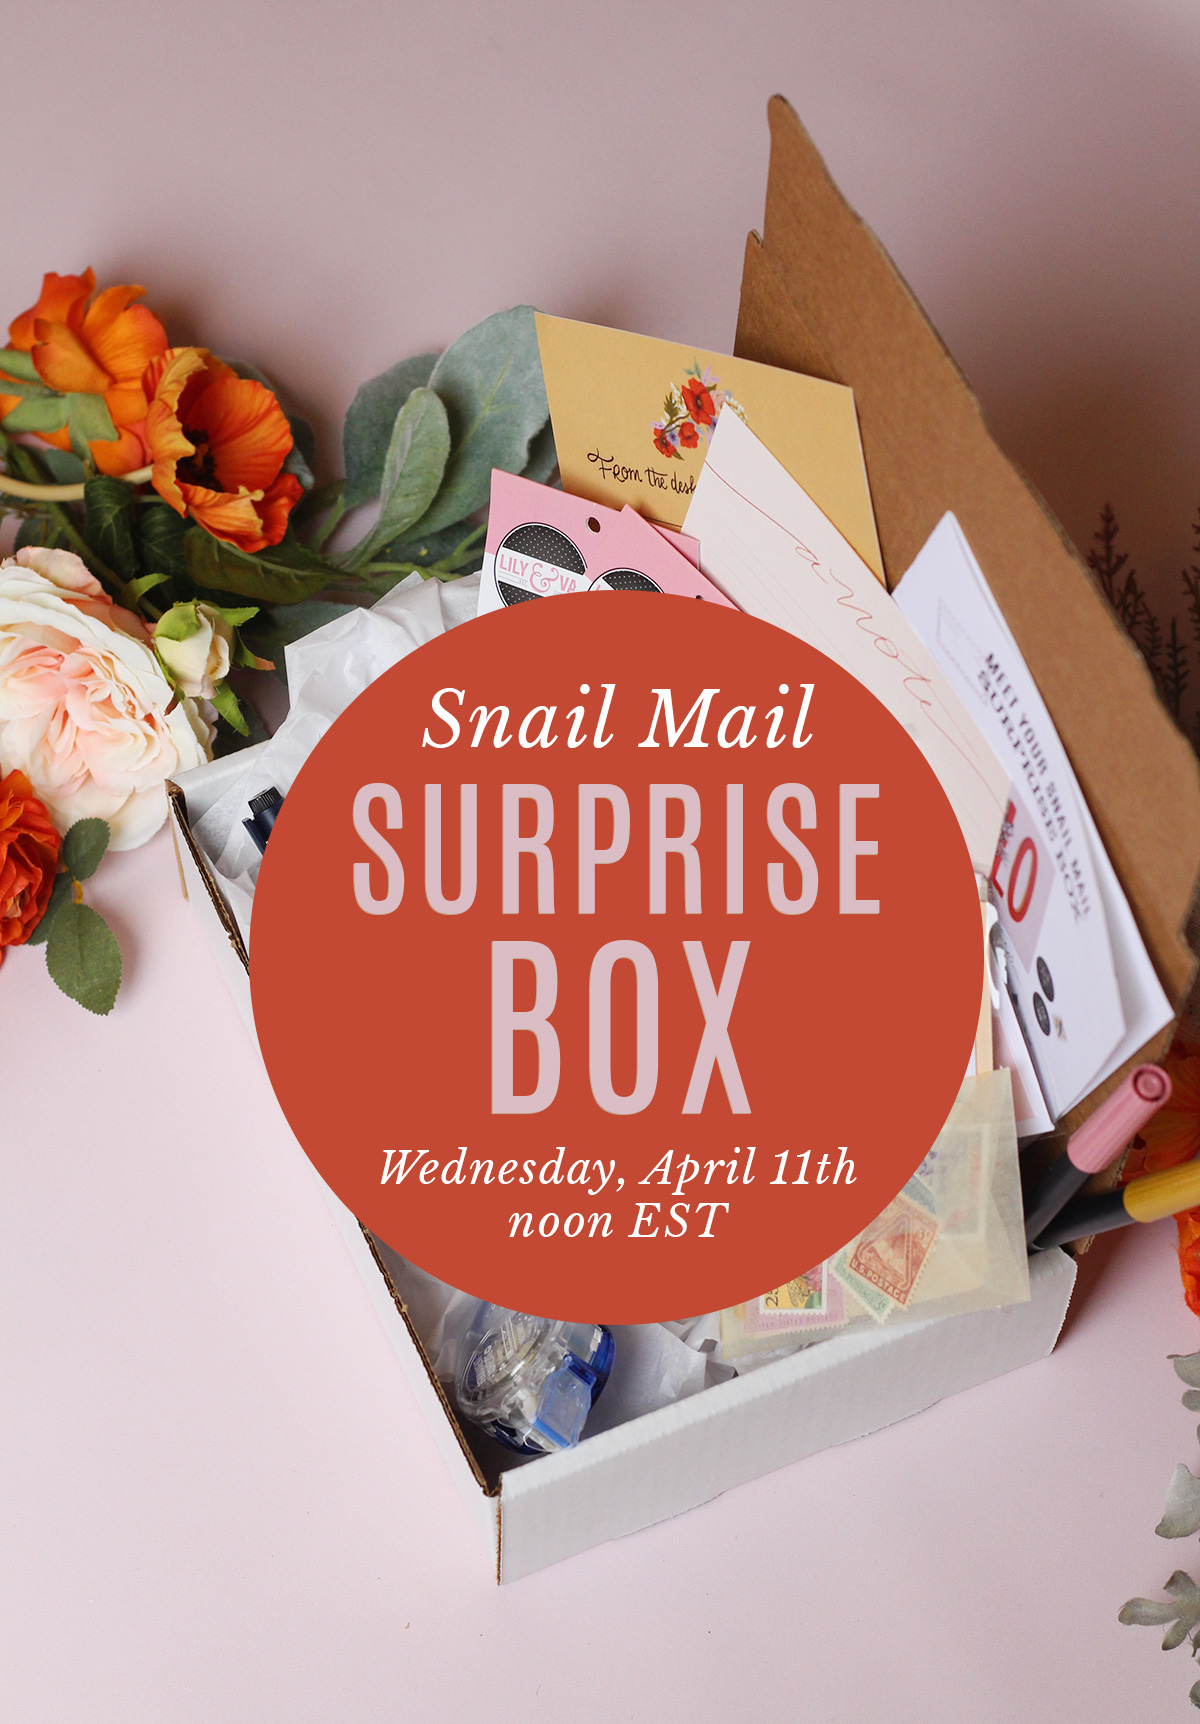 Lily & Val Snail Mail Surprise Box Launching on Wednesday, April 11th